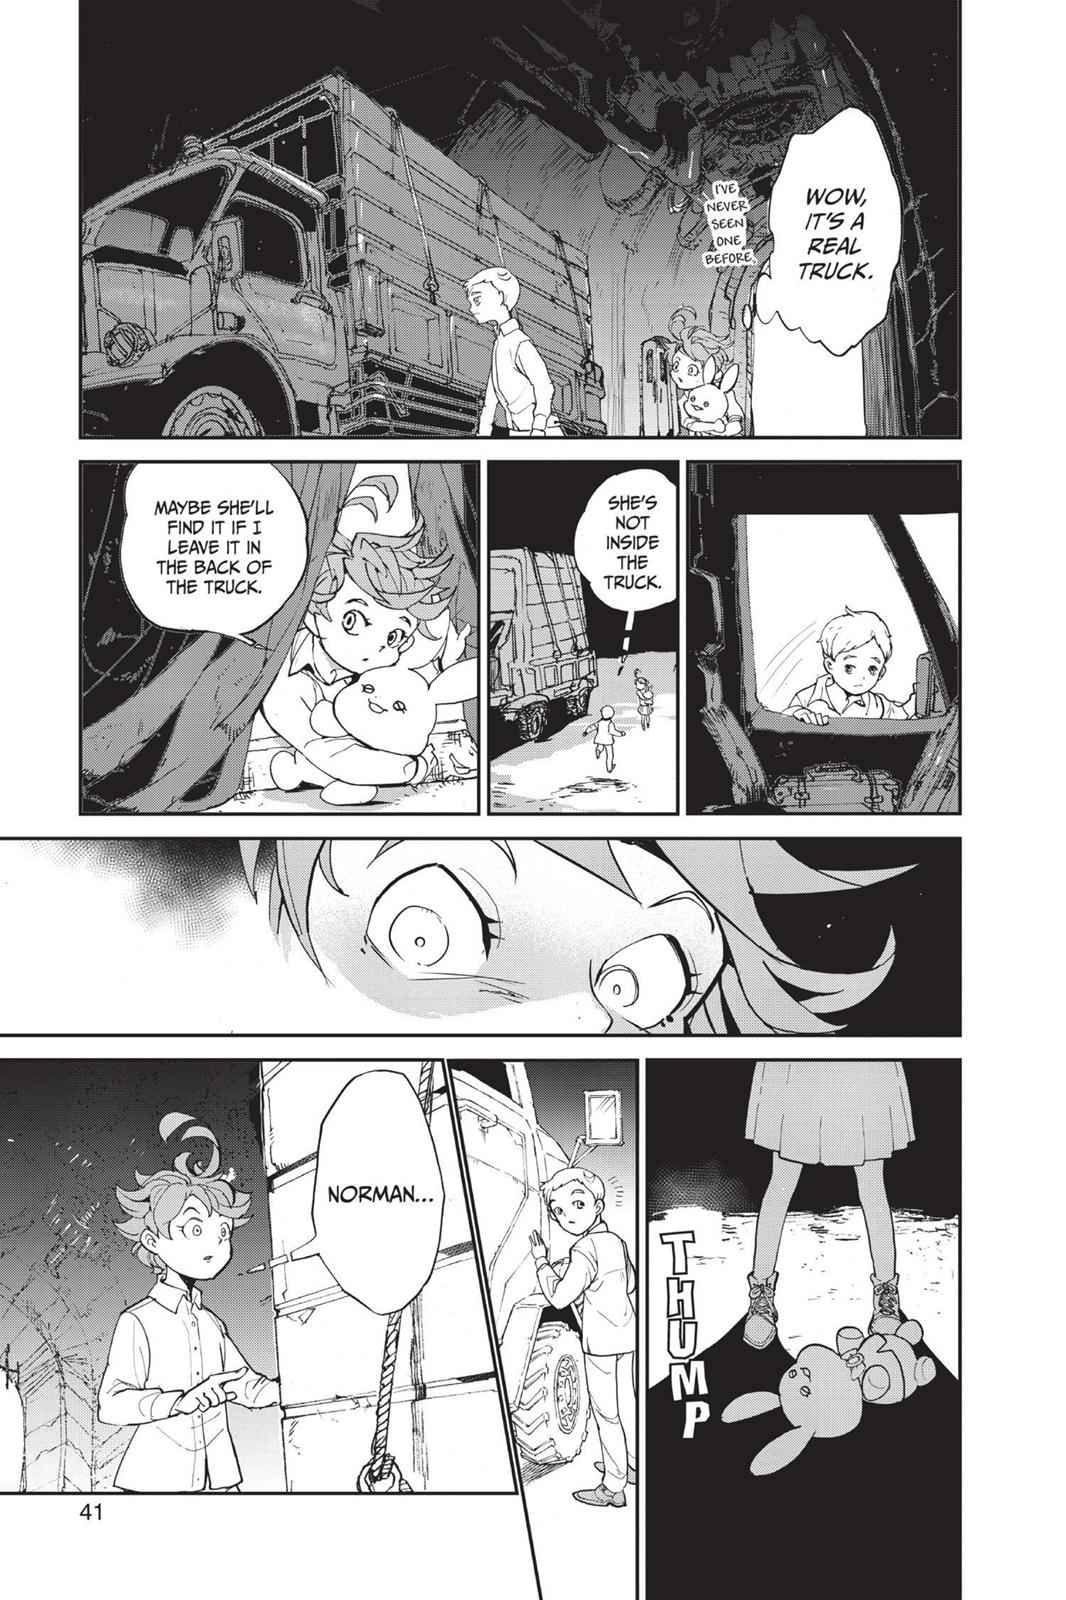 The Promised Neverland Chapitre 1 : promised, neverland, chapitre, Promised, Neverland, Chapter, Neverland,, Manga, Covers,